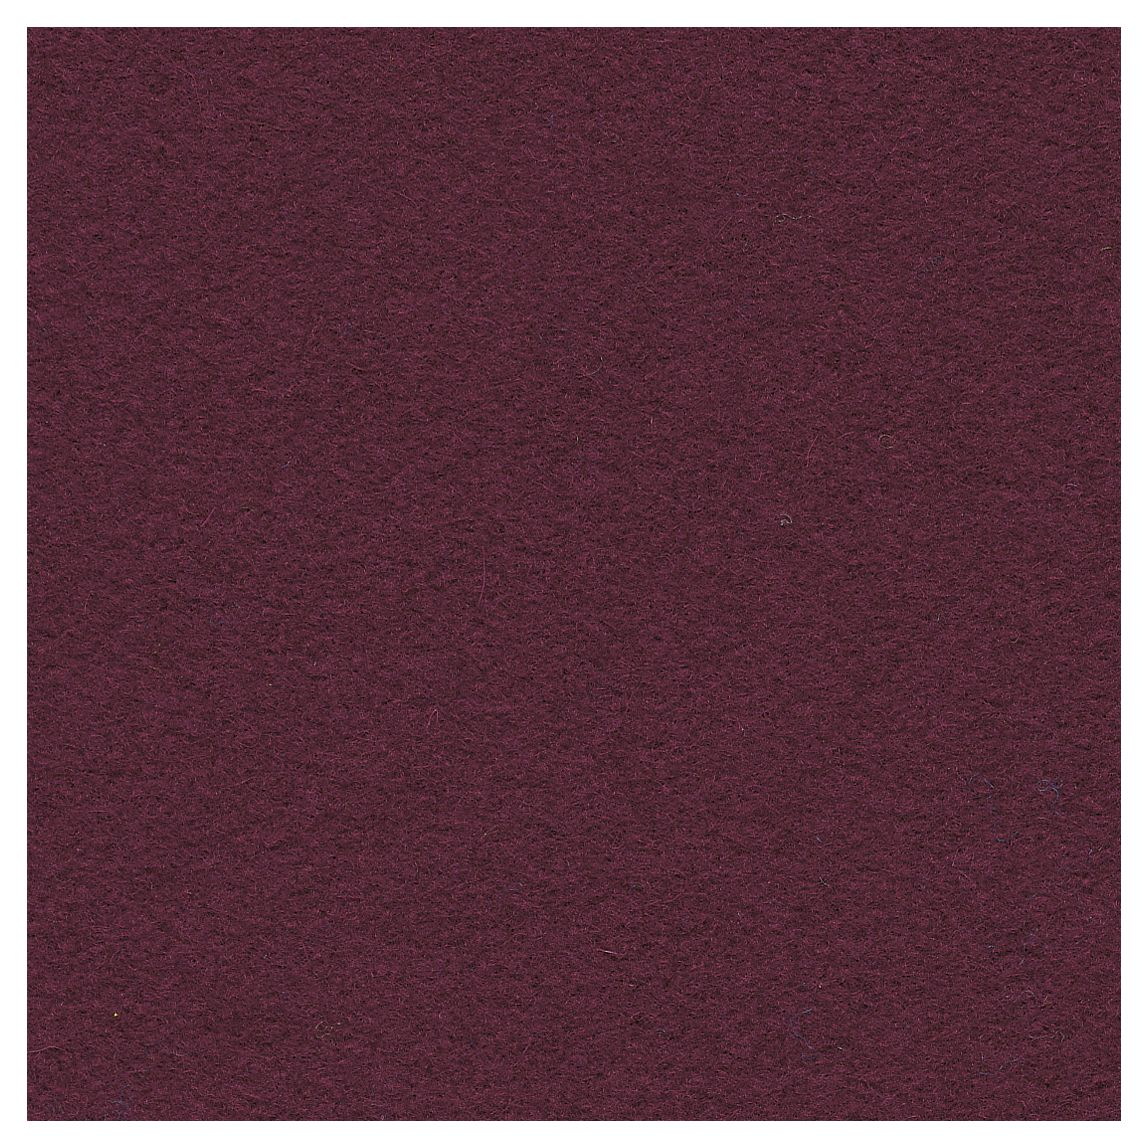 Wooly Violet Swatch